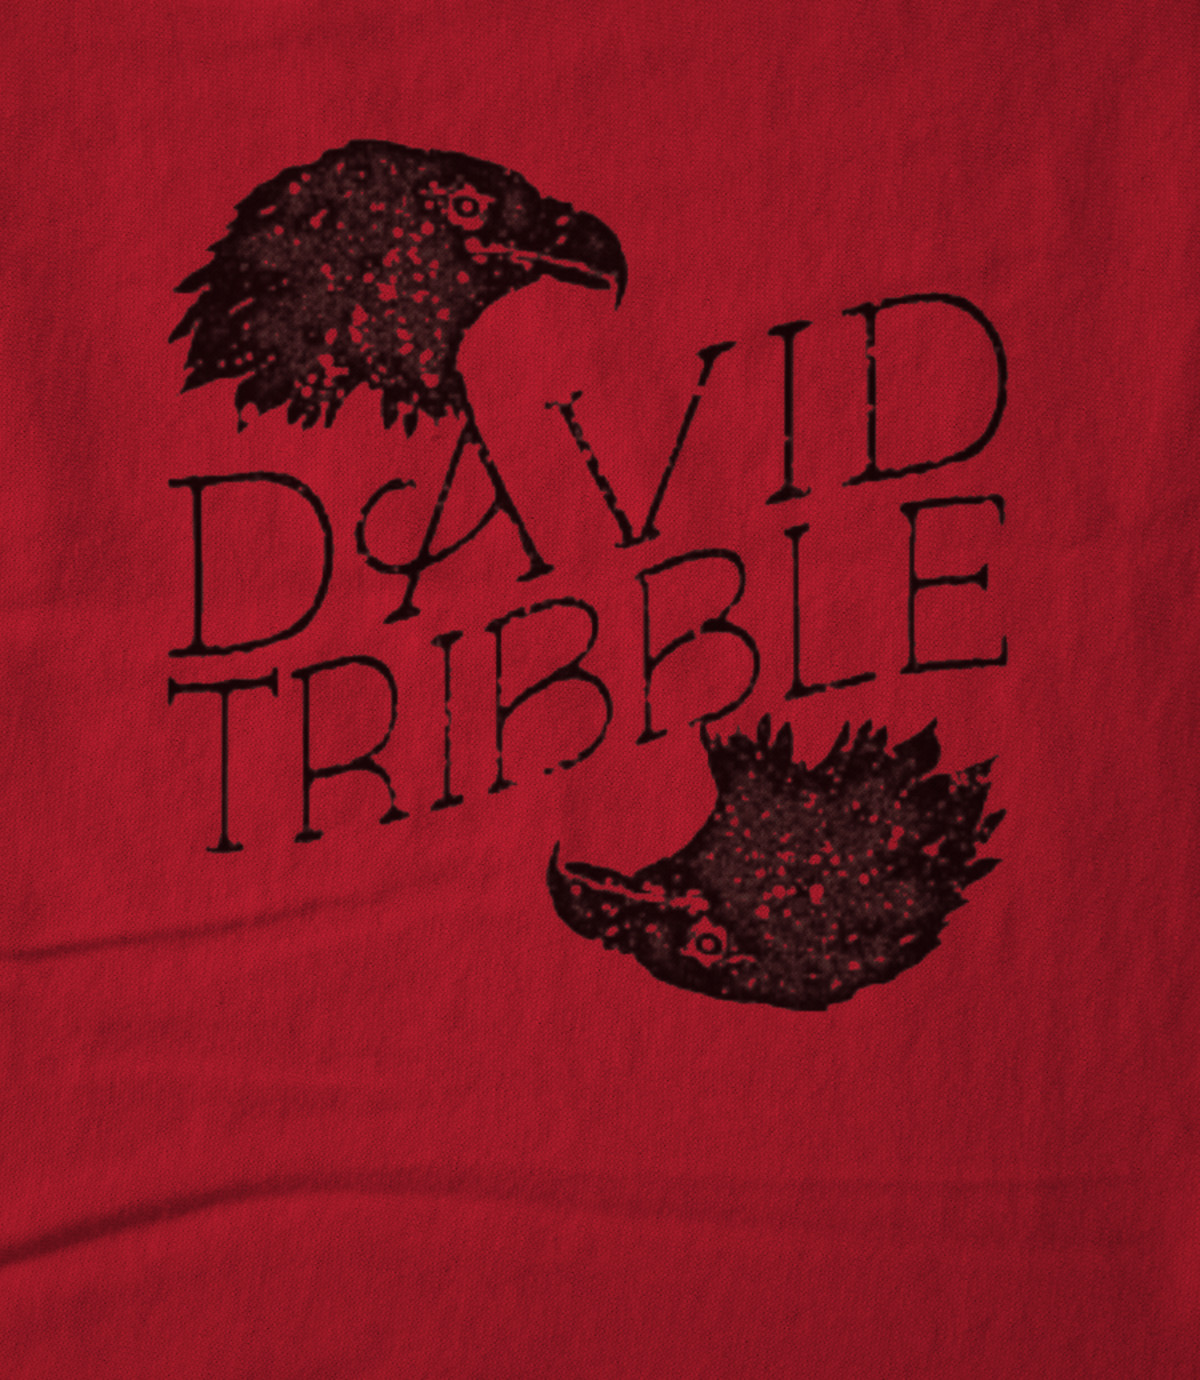 David tribble crow round fade 1530374322